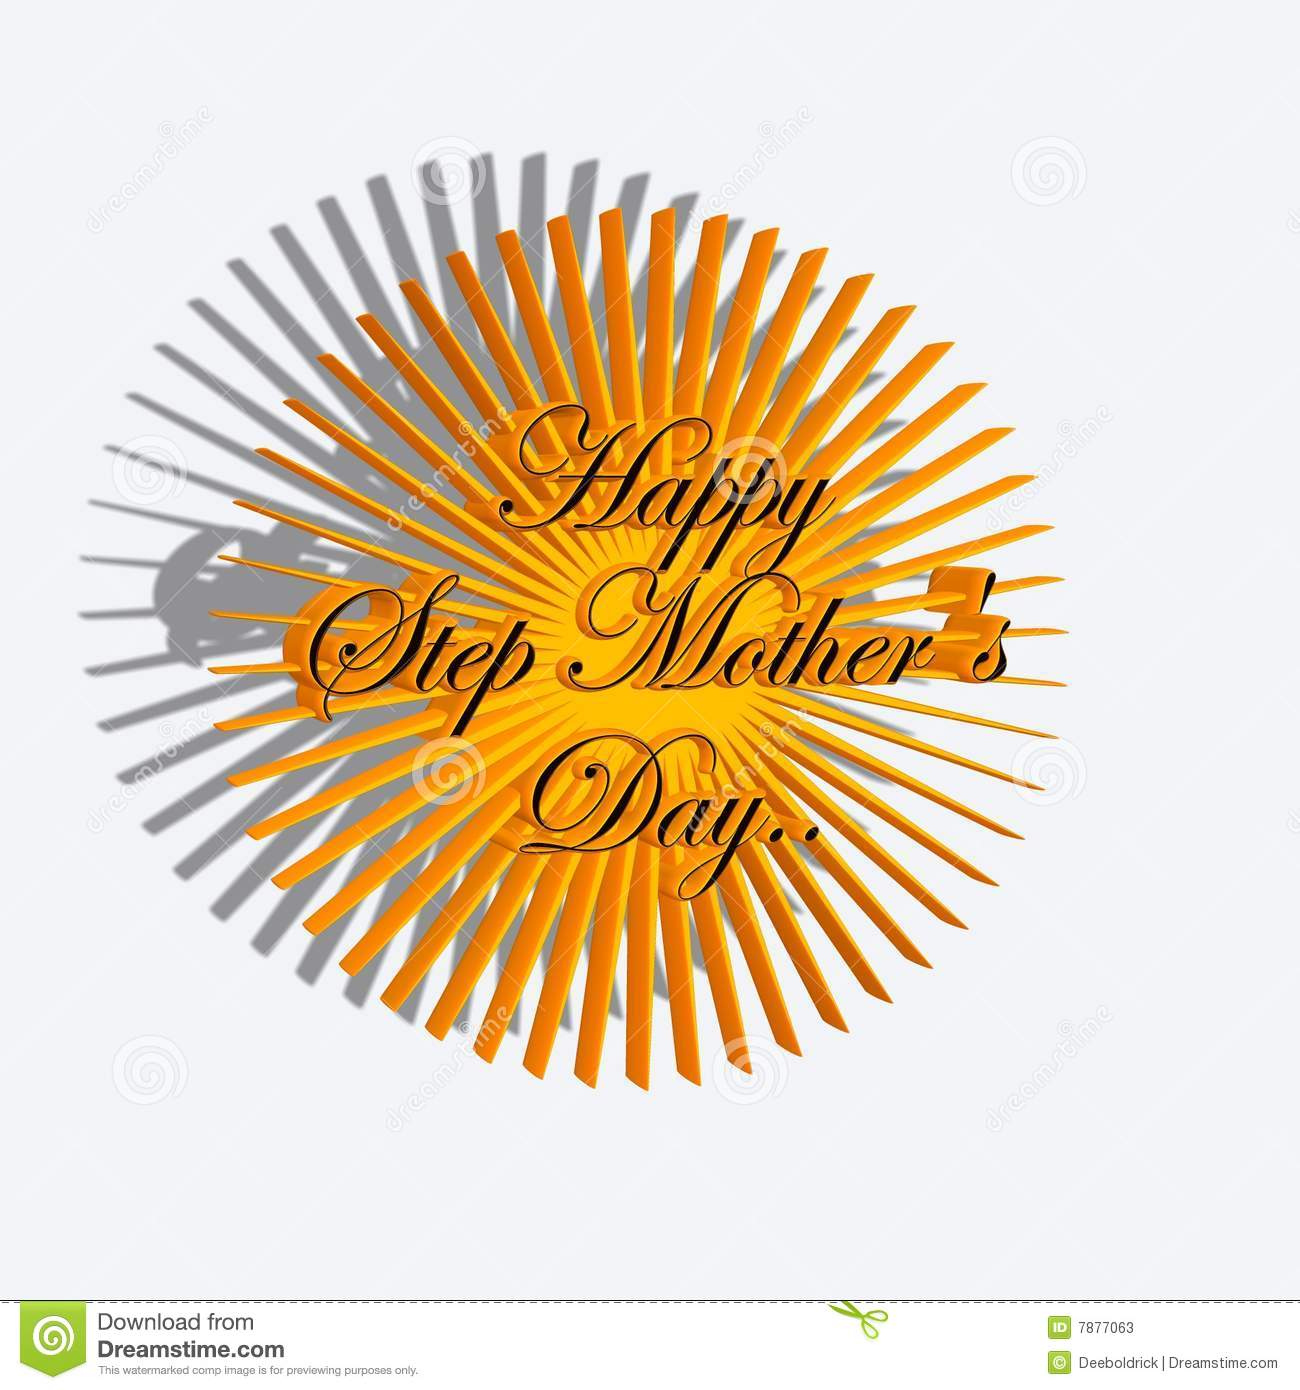 wallpapers Happy Step Mothers Day Images dreamstime com